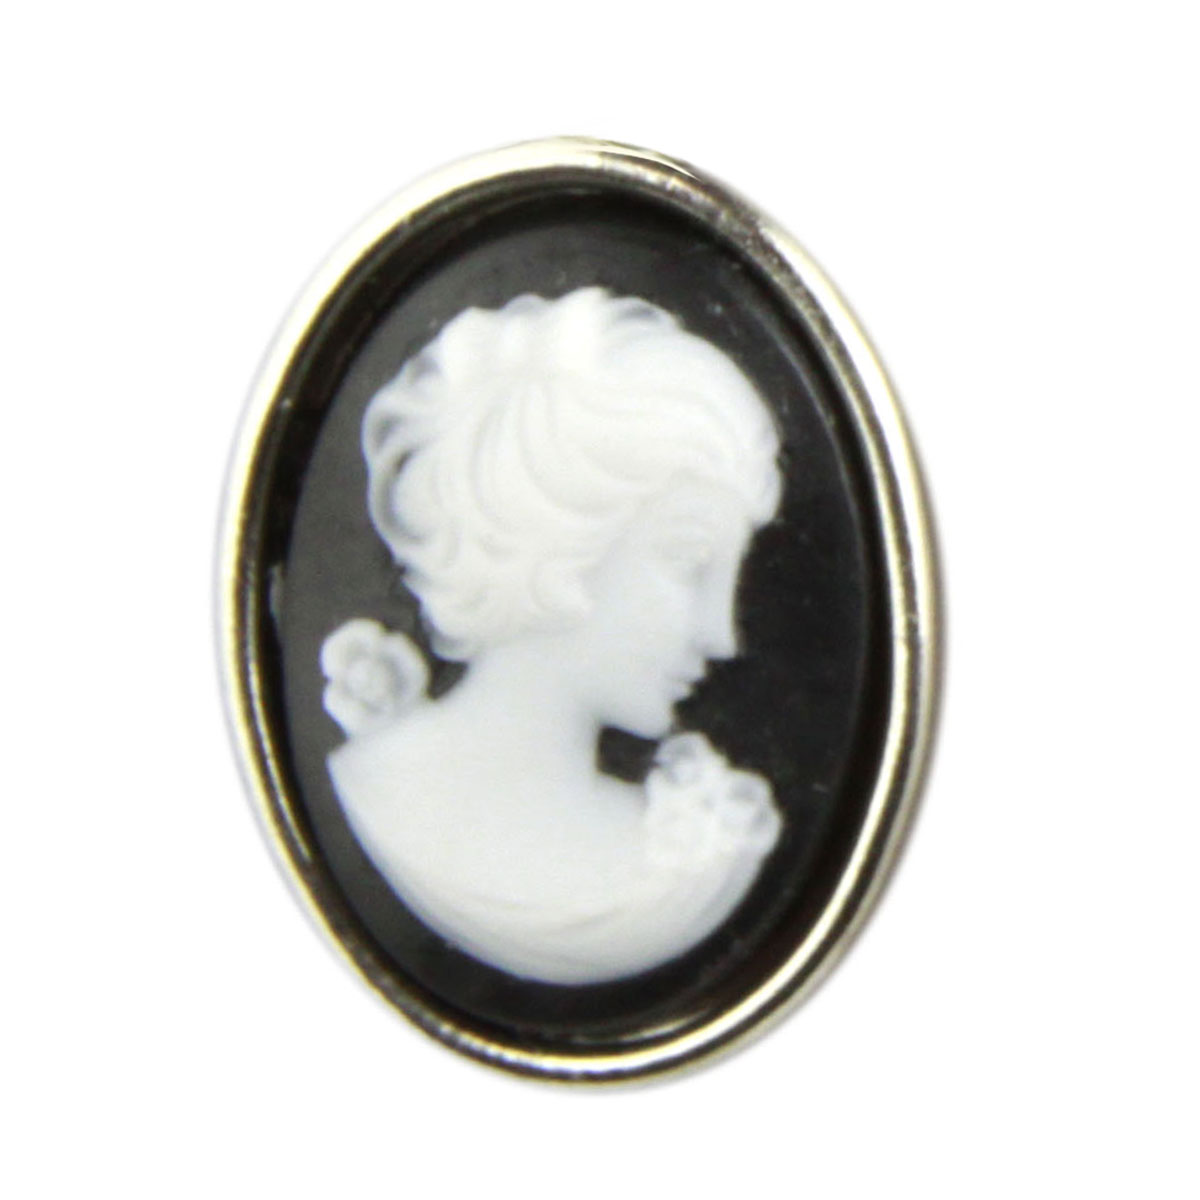 Tarina Tarantino Jewelry Iconic Black Small Cameo Ring